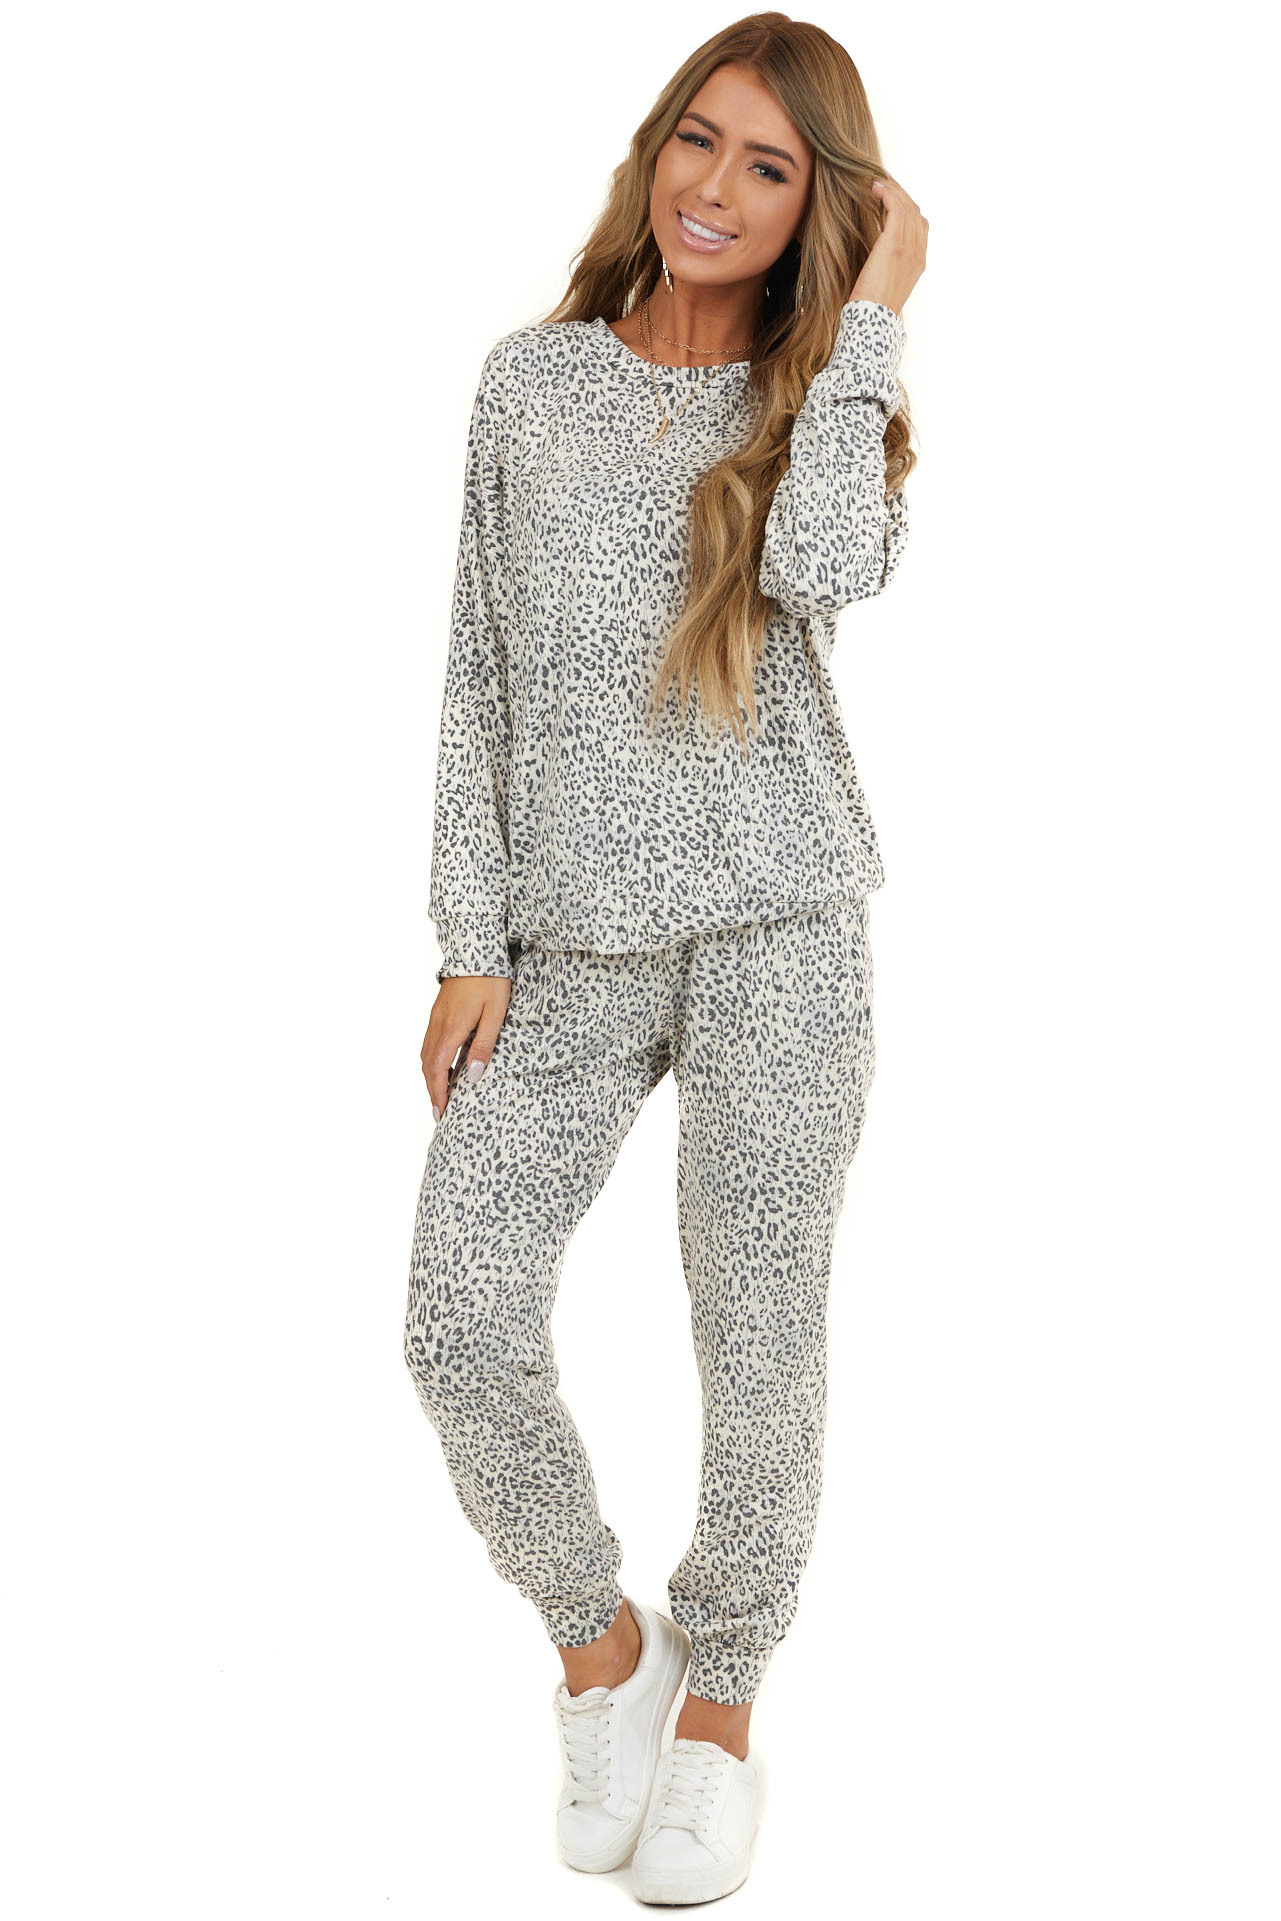 Ivory Leopard Print Knit Top and Sweatpants Two Piece Set